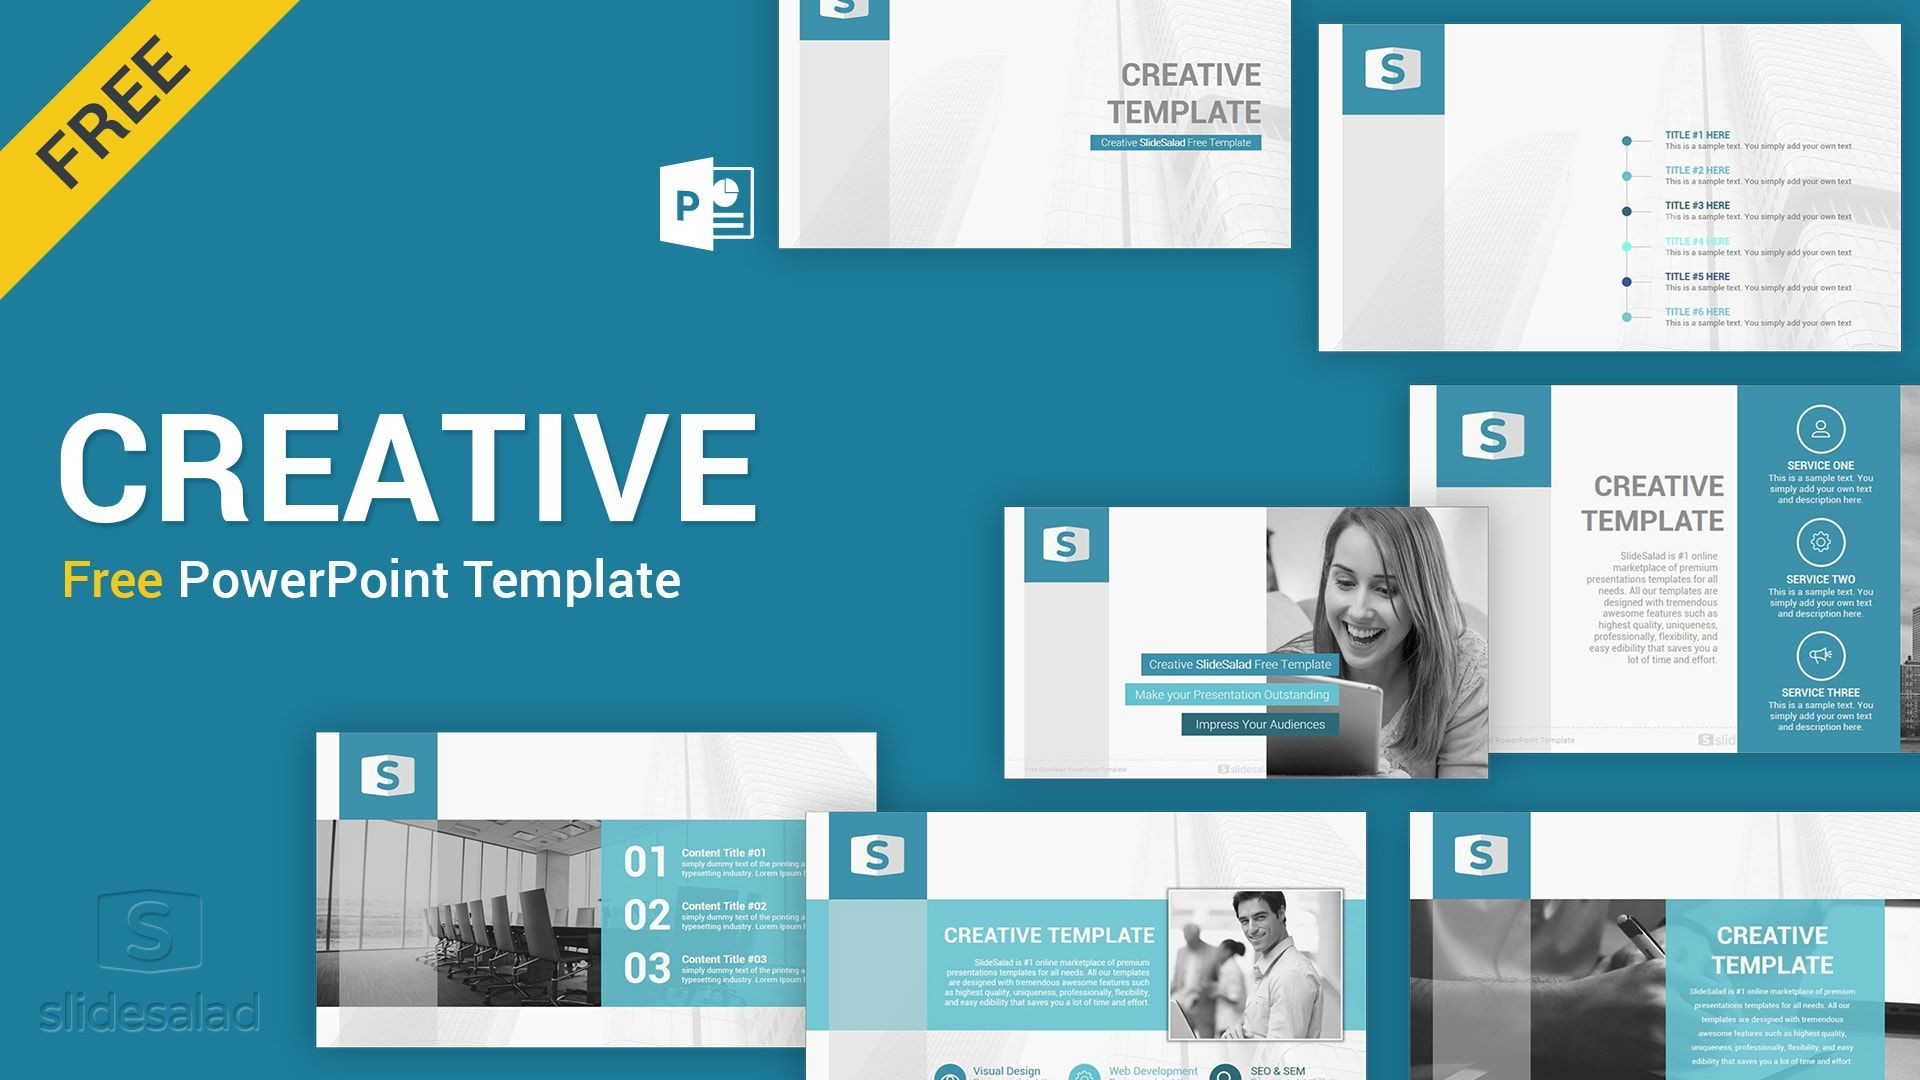 006 Fascinating Free Download Ppt Template For Project Presentation Image  Simple Animated1920